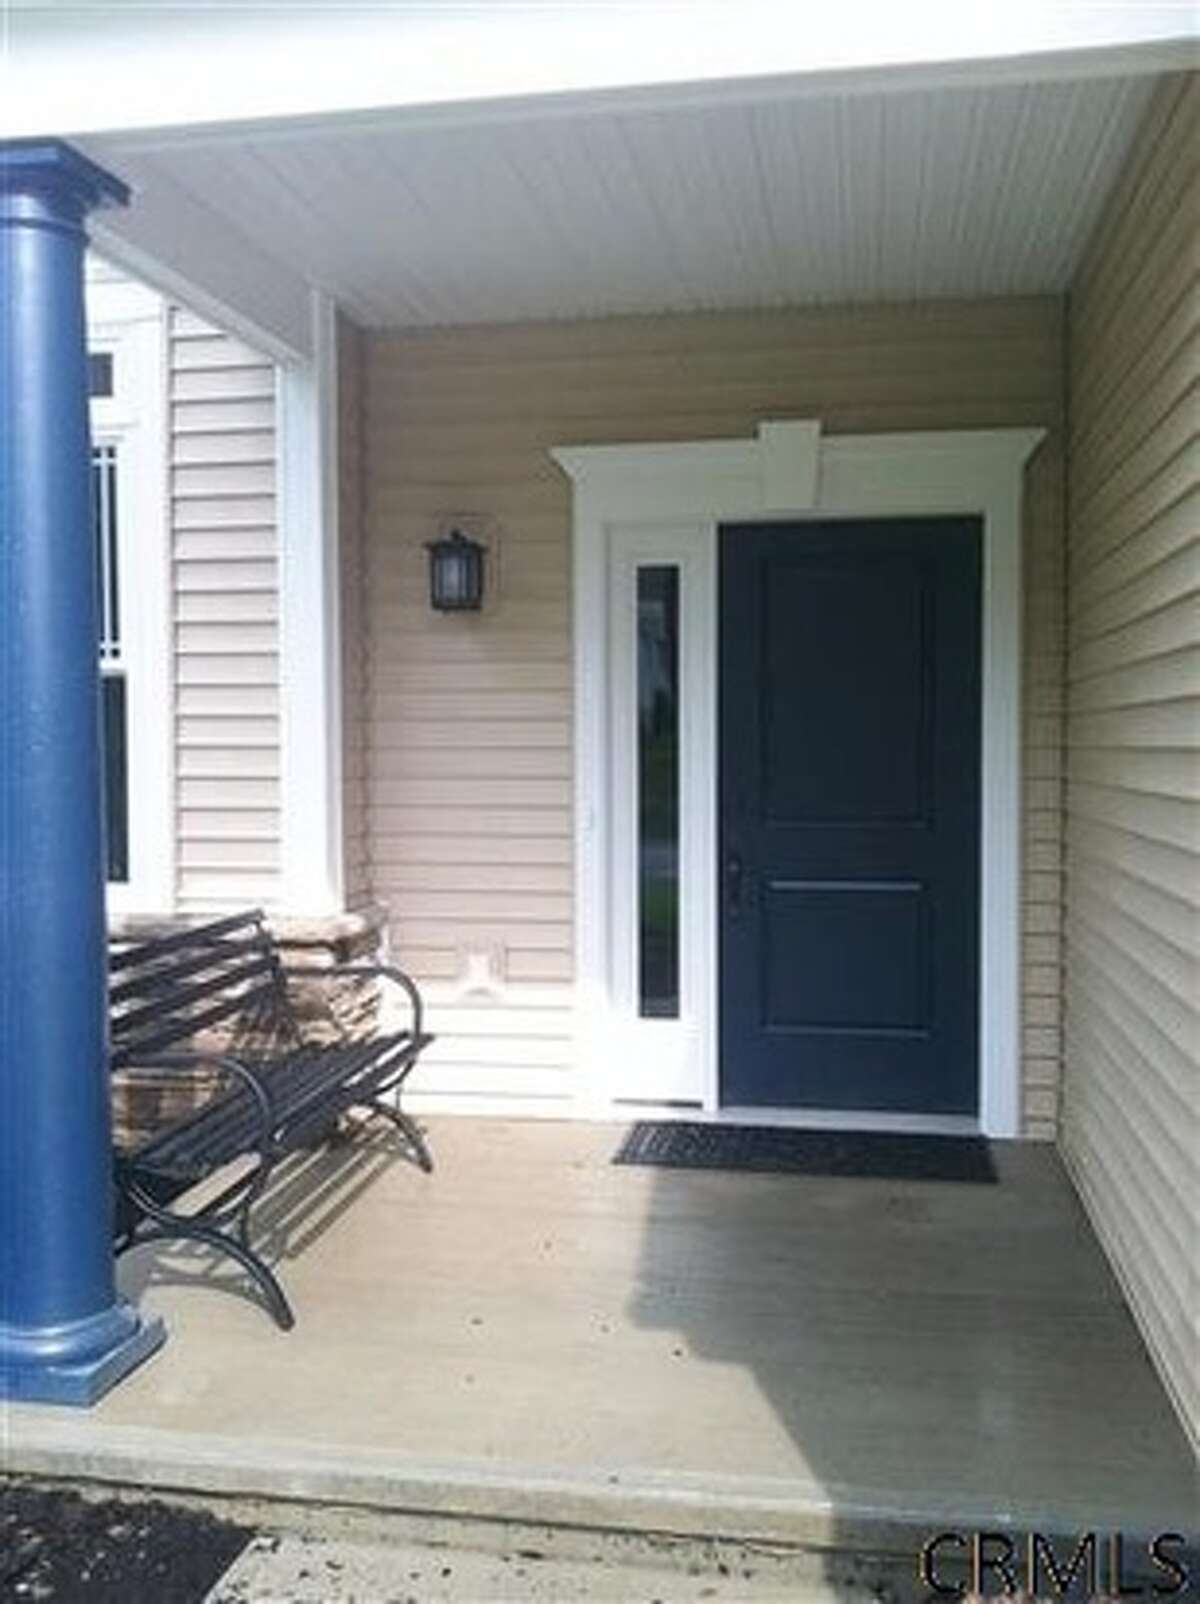 $272,434.307a LOIS LA, Niskayuna, NY 12304. Open Sunday, November 9 from 1:00 p.m. -4:00 p.m.View this listing.